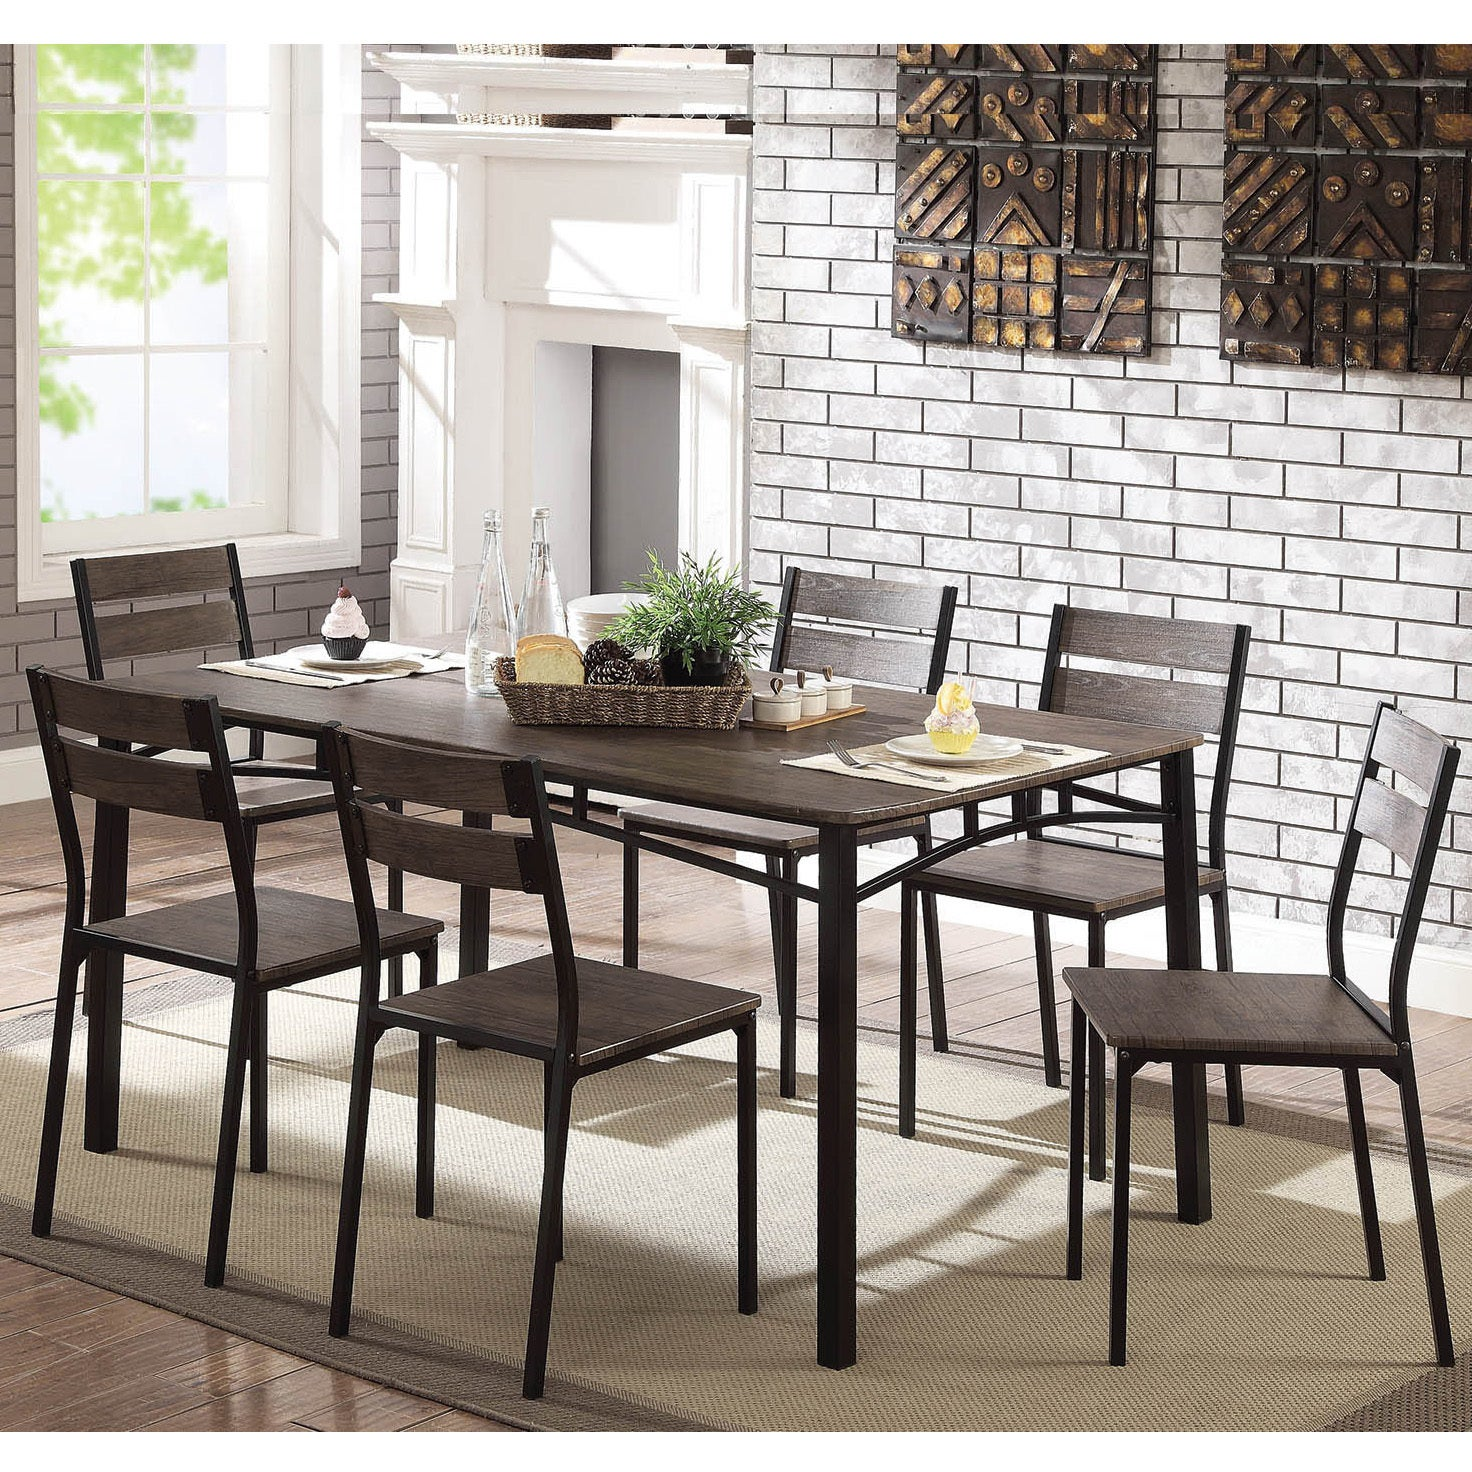 Furniture Of America Patton 7 Piece Rustic Modern Farmhouse Dining Table Set On Free Shipping Today 22671341